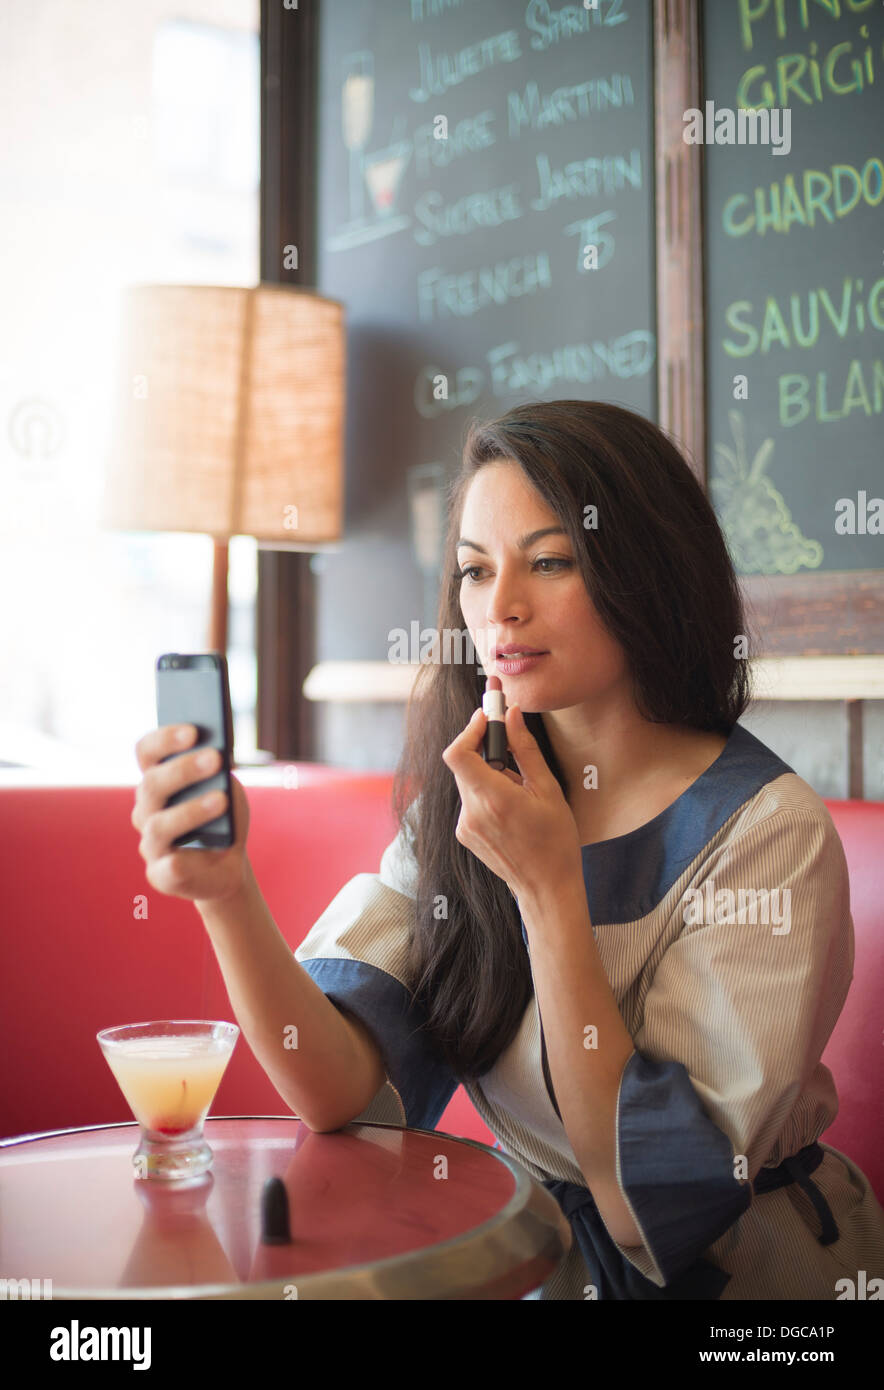 Mid adult women using mobile phone to apply lipstick in restaurant - Stock Image